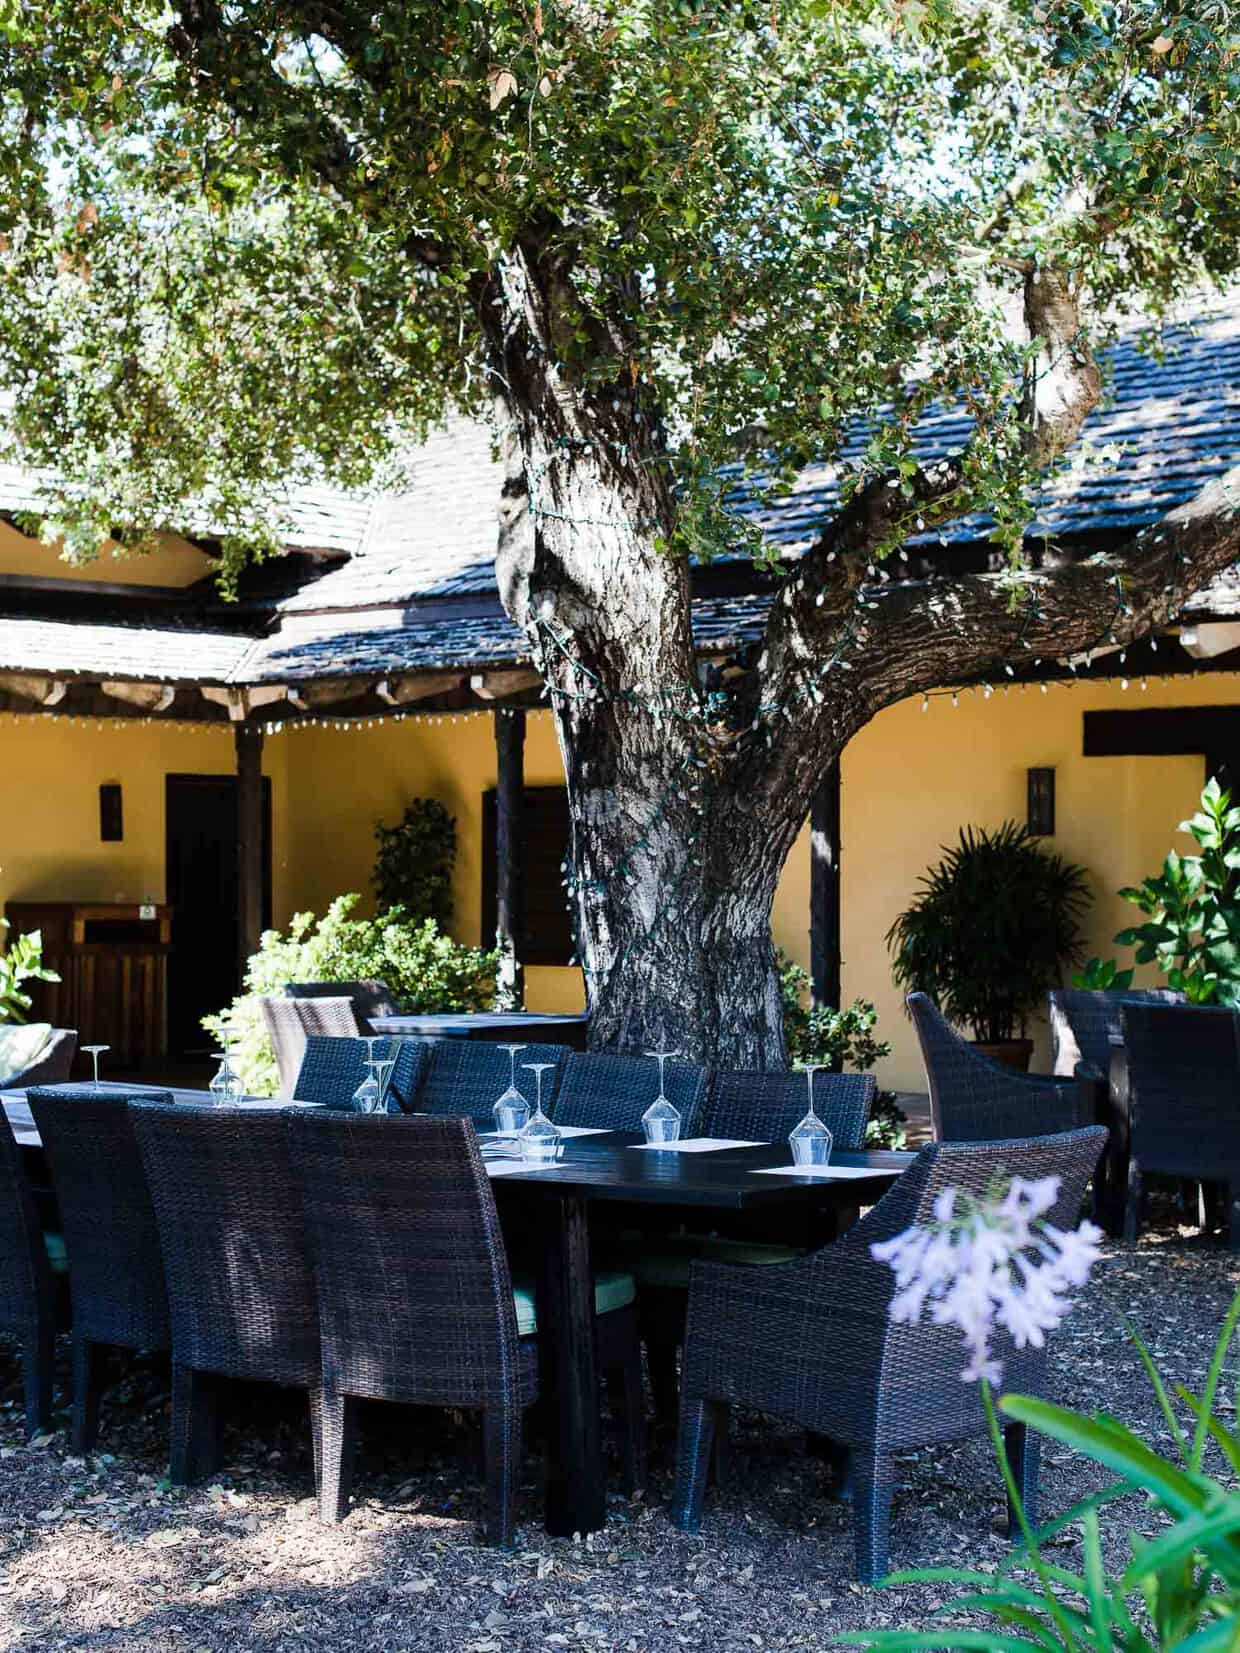 The courtyard at Landmark Vineyards offer a cozy place to spend the afternoon for tasting.